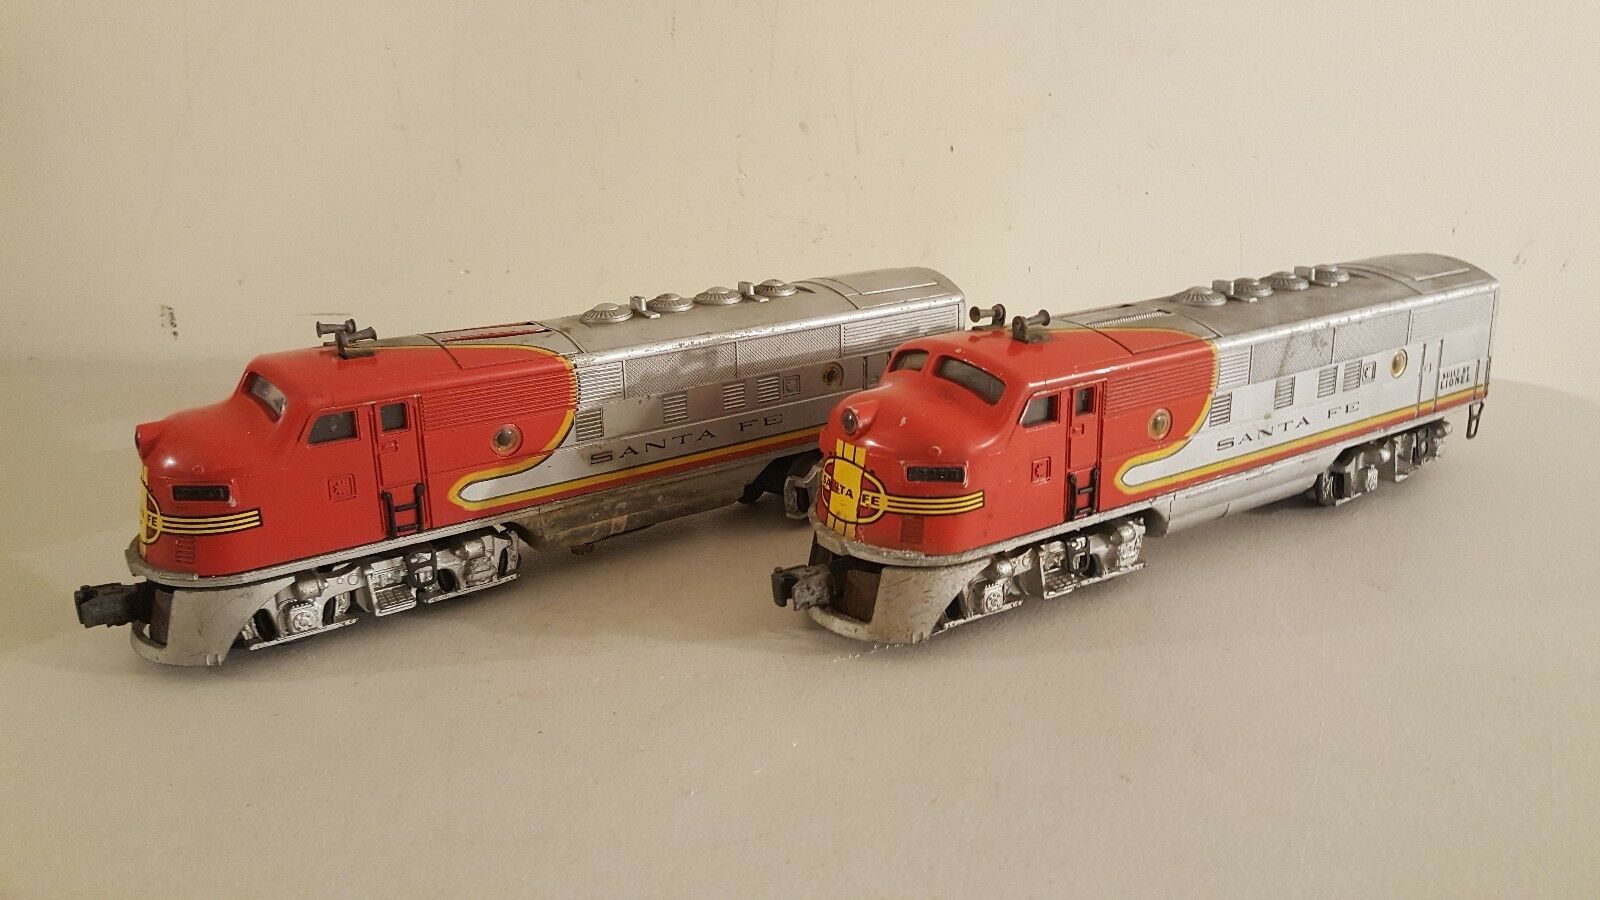 Vintage 1940's Postwar Lionel  2333 F3 Santa Fe Twin Diesel Locomotive Trains